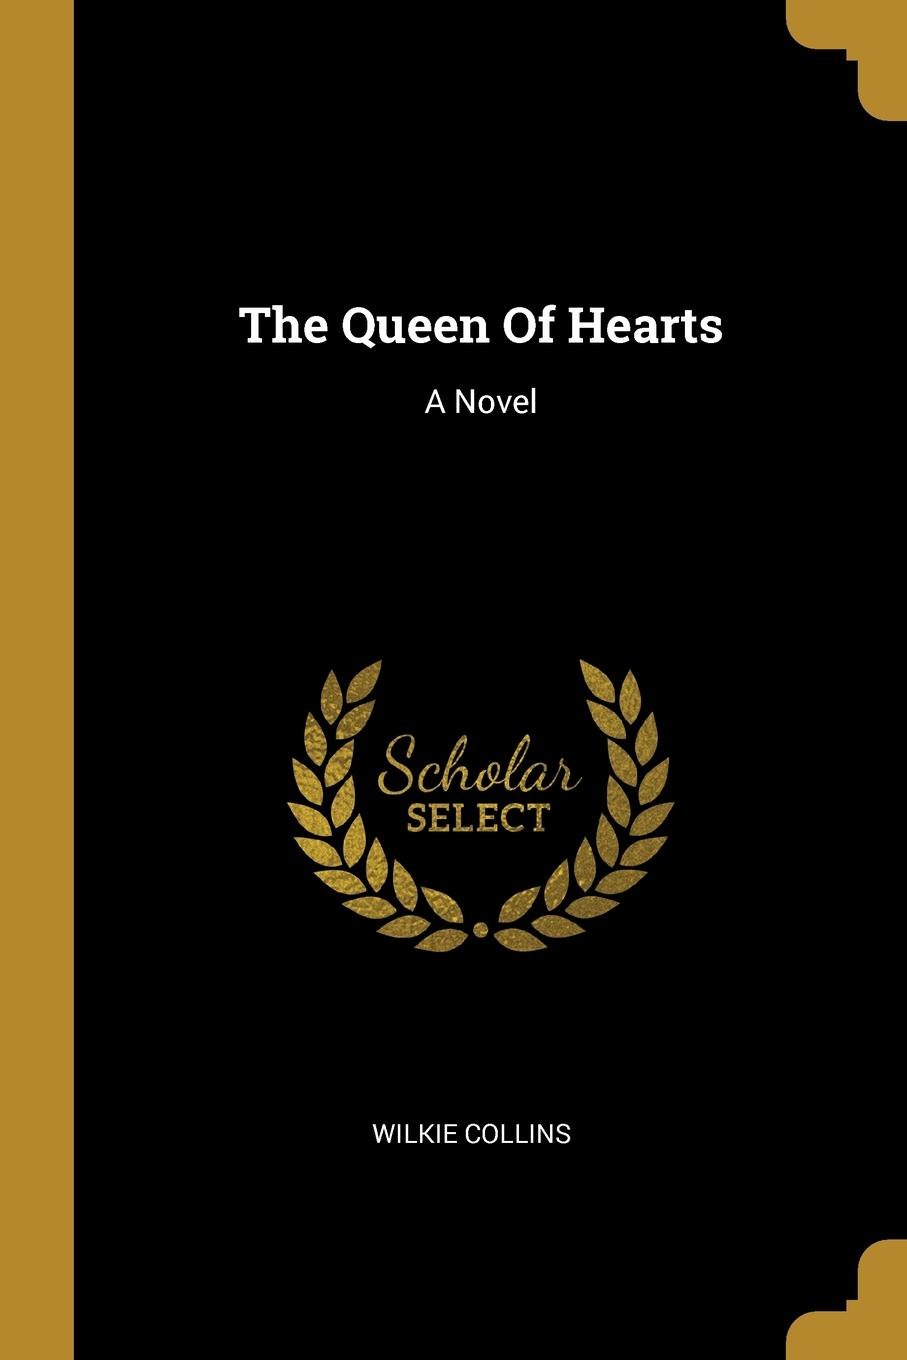 Wilkie Collins. The Queen Of Hearts. A Novel